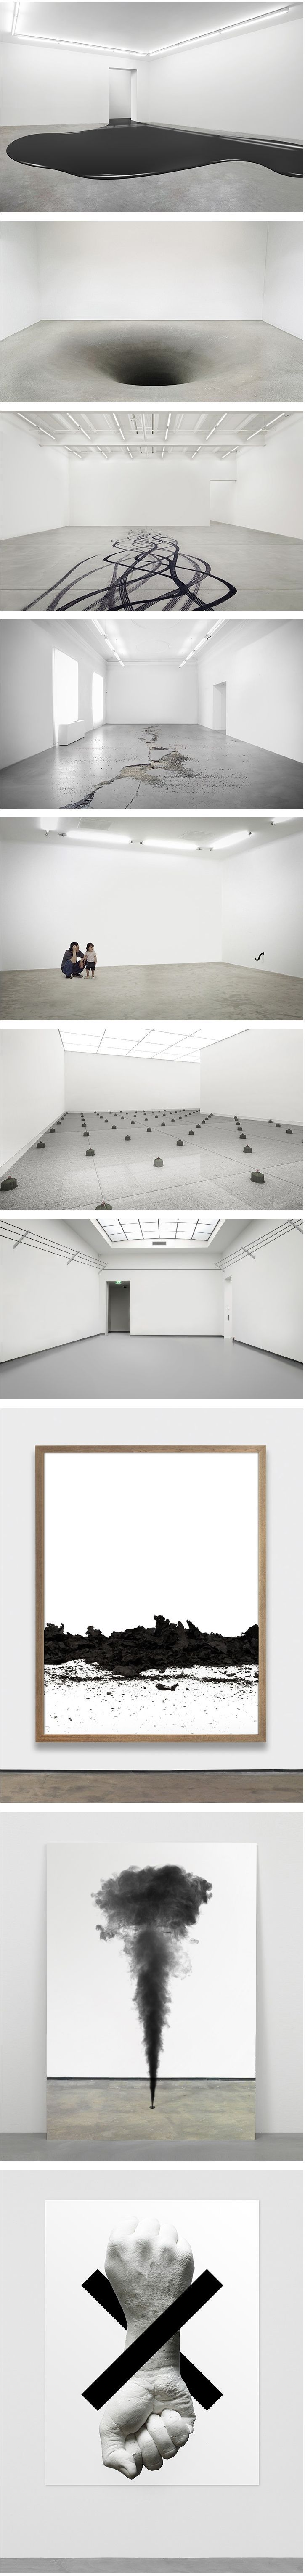 Fabian Bürgy a sense of the improbable. This Swiss artist born in 1980 turns everyday objects at the heart of its facilities.